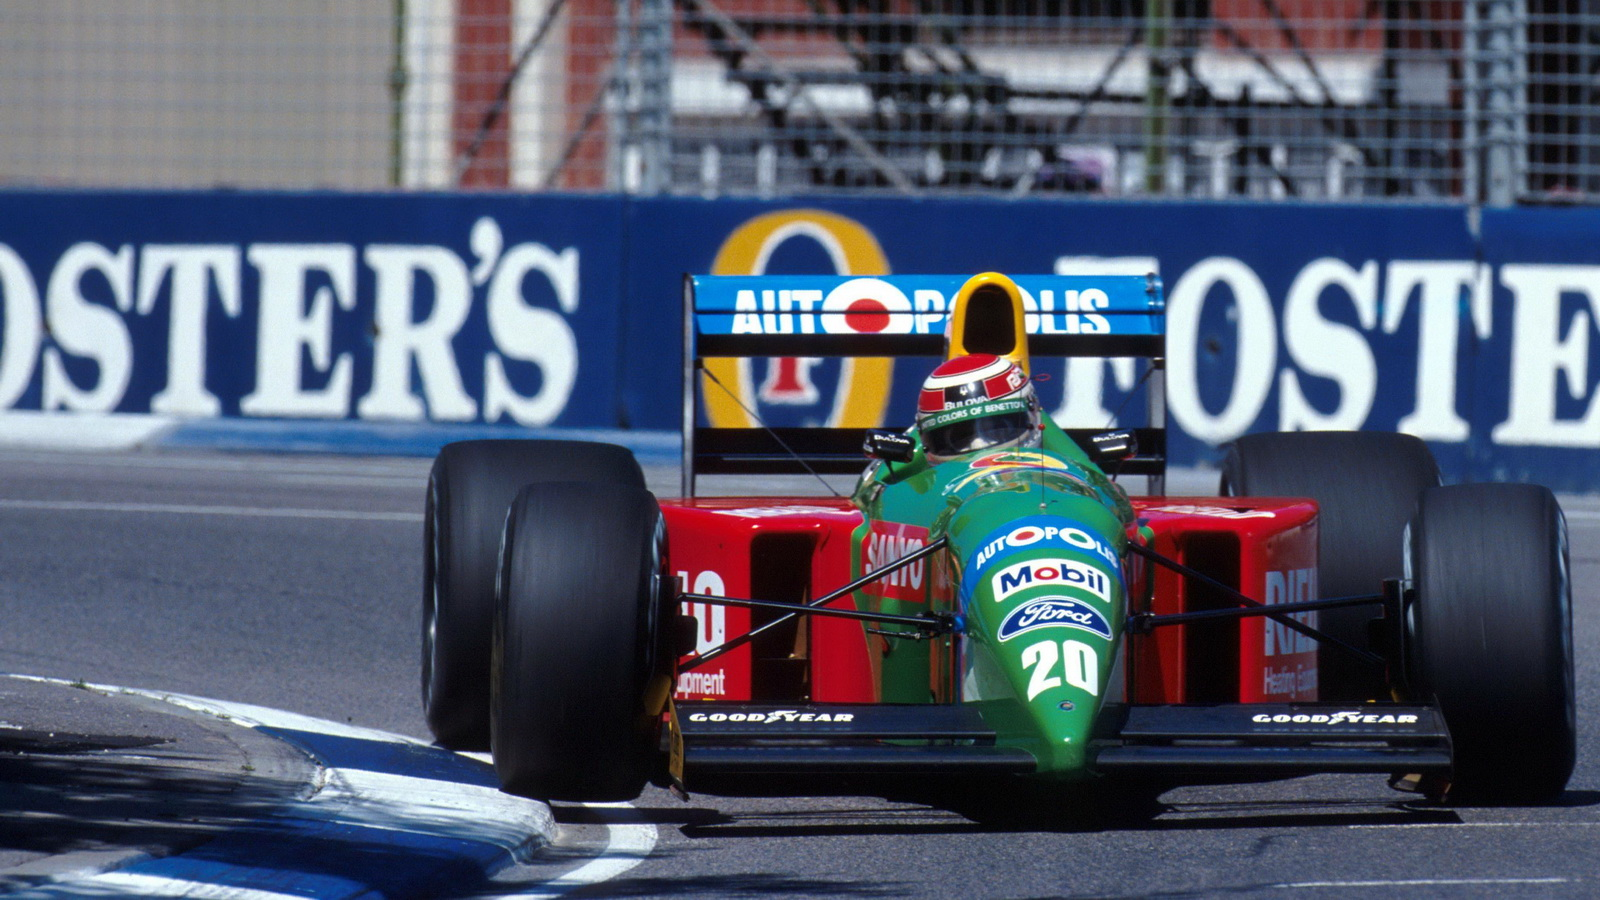 Piquet_Benetton_Adelaide GP 1990